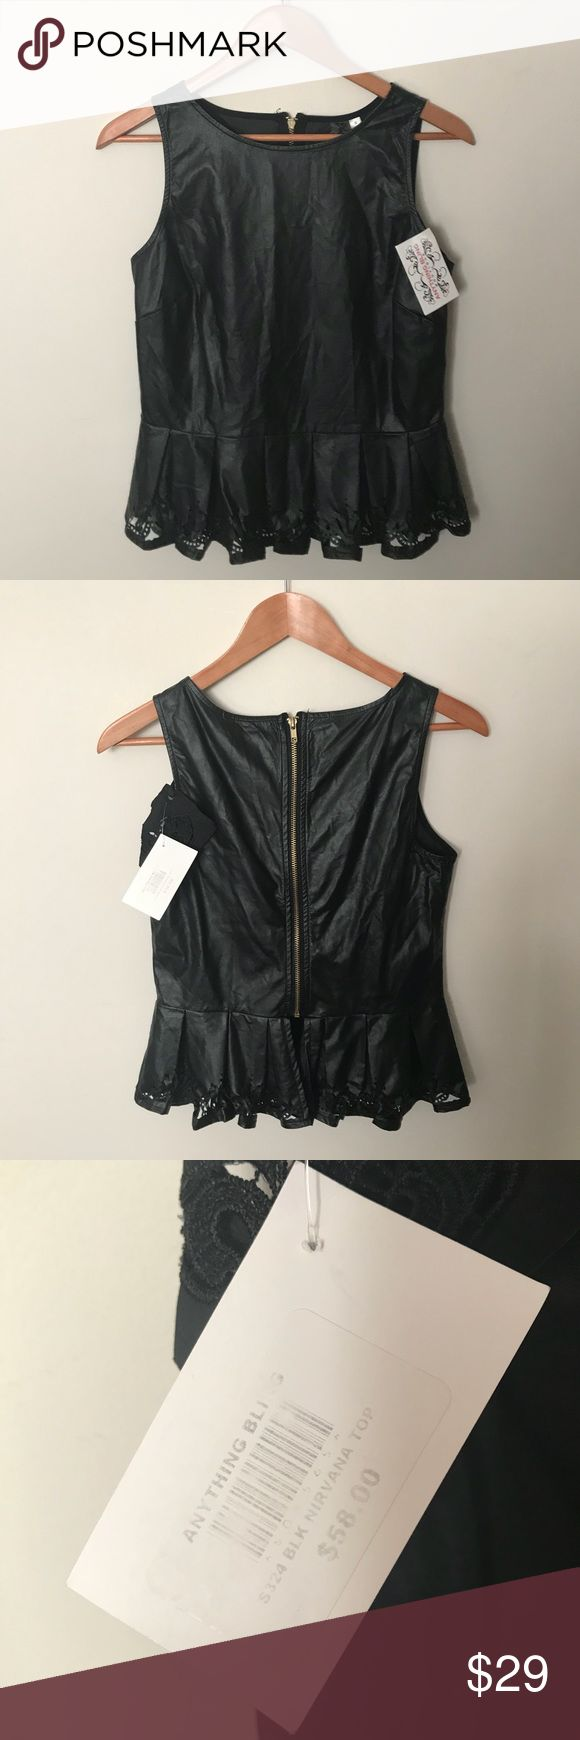 "NWT BLACK SWAN Faux Leather Black Peplum Top New with tags, BLACK SWAN, faux leather black peplum top. Has cut-out design around the bottom of the top. Chest 32"", Length 20"". Clean, non-smoking home. Posh Ambassador (Suggested User), 5⭐️avg rated, ship fast - so you can buy with confidence! 30% bundle discount on 2! BLACK SWAN Tops"